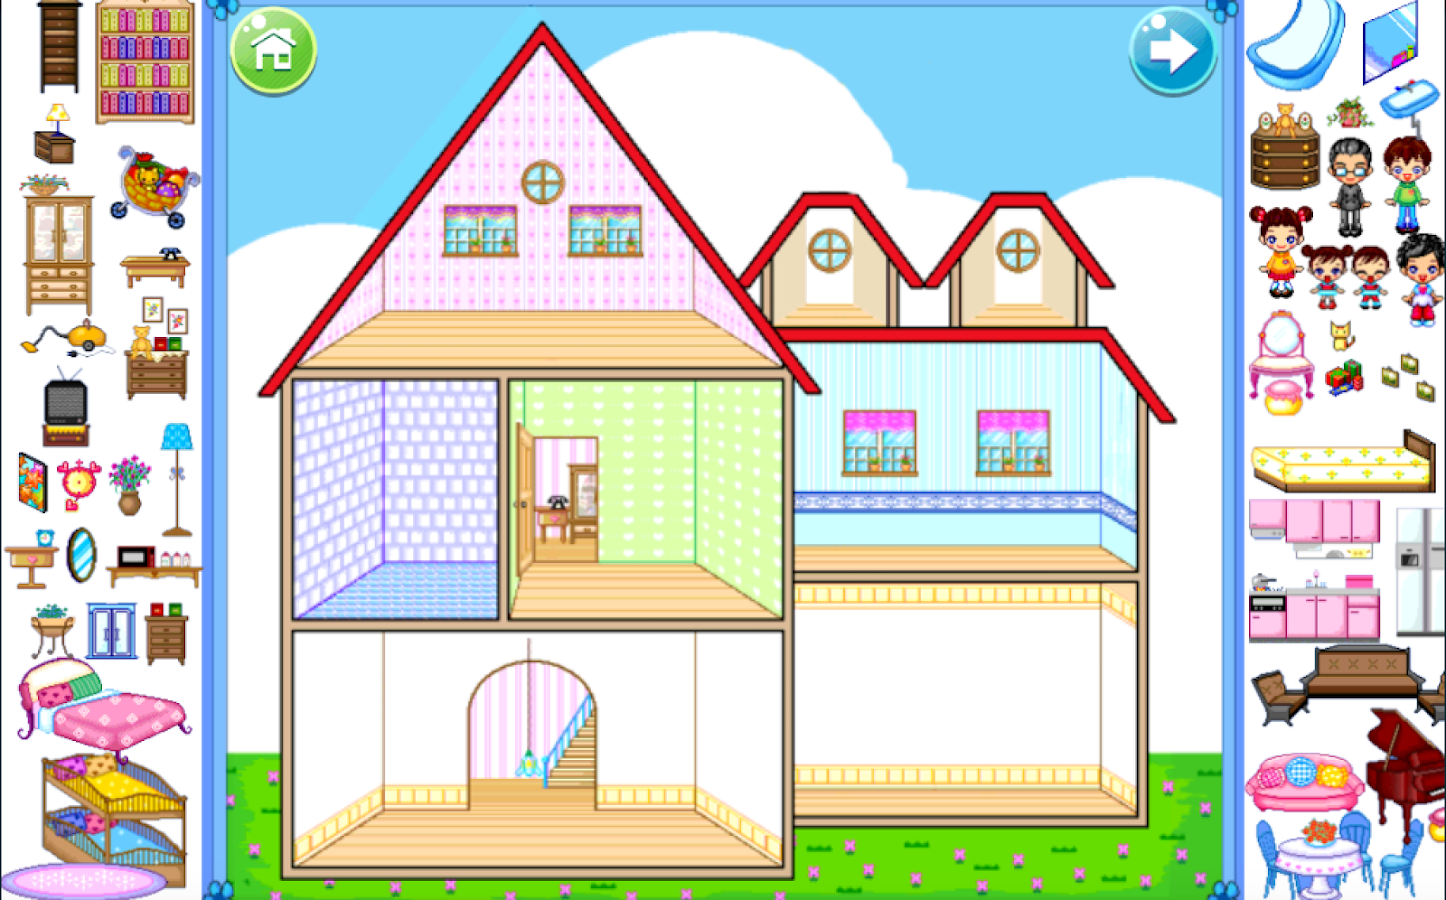 My dream house decoration android apps on google play for Room design game app